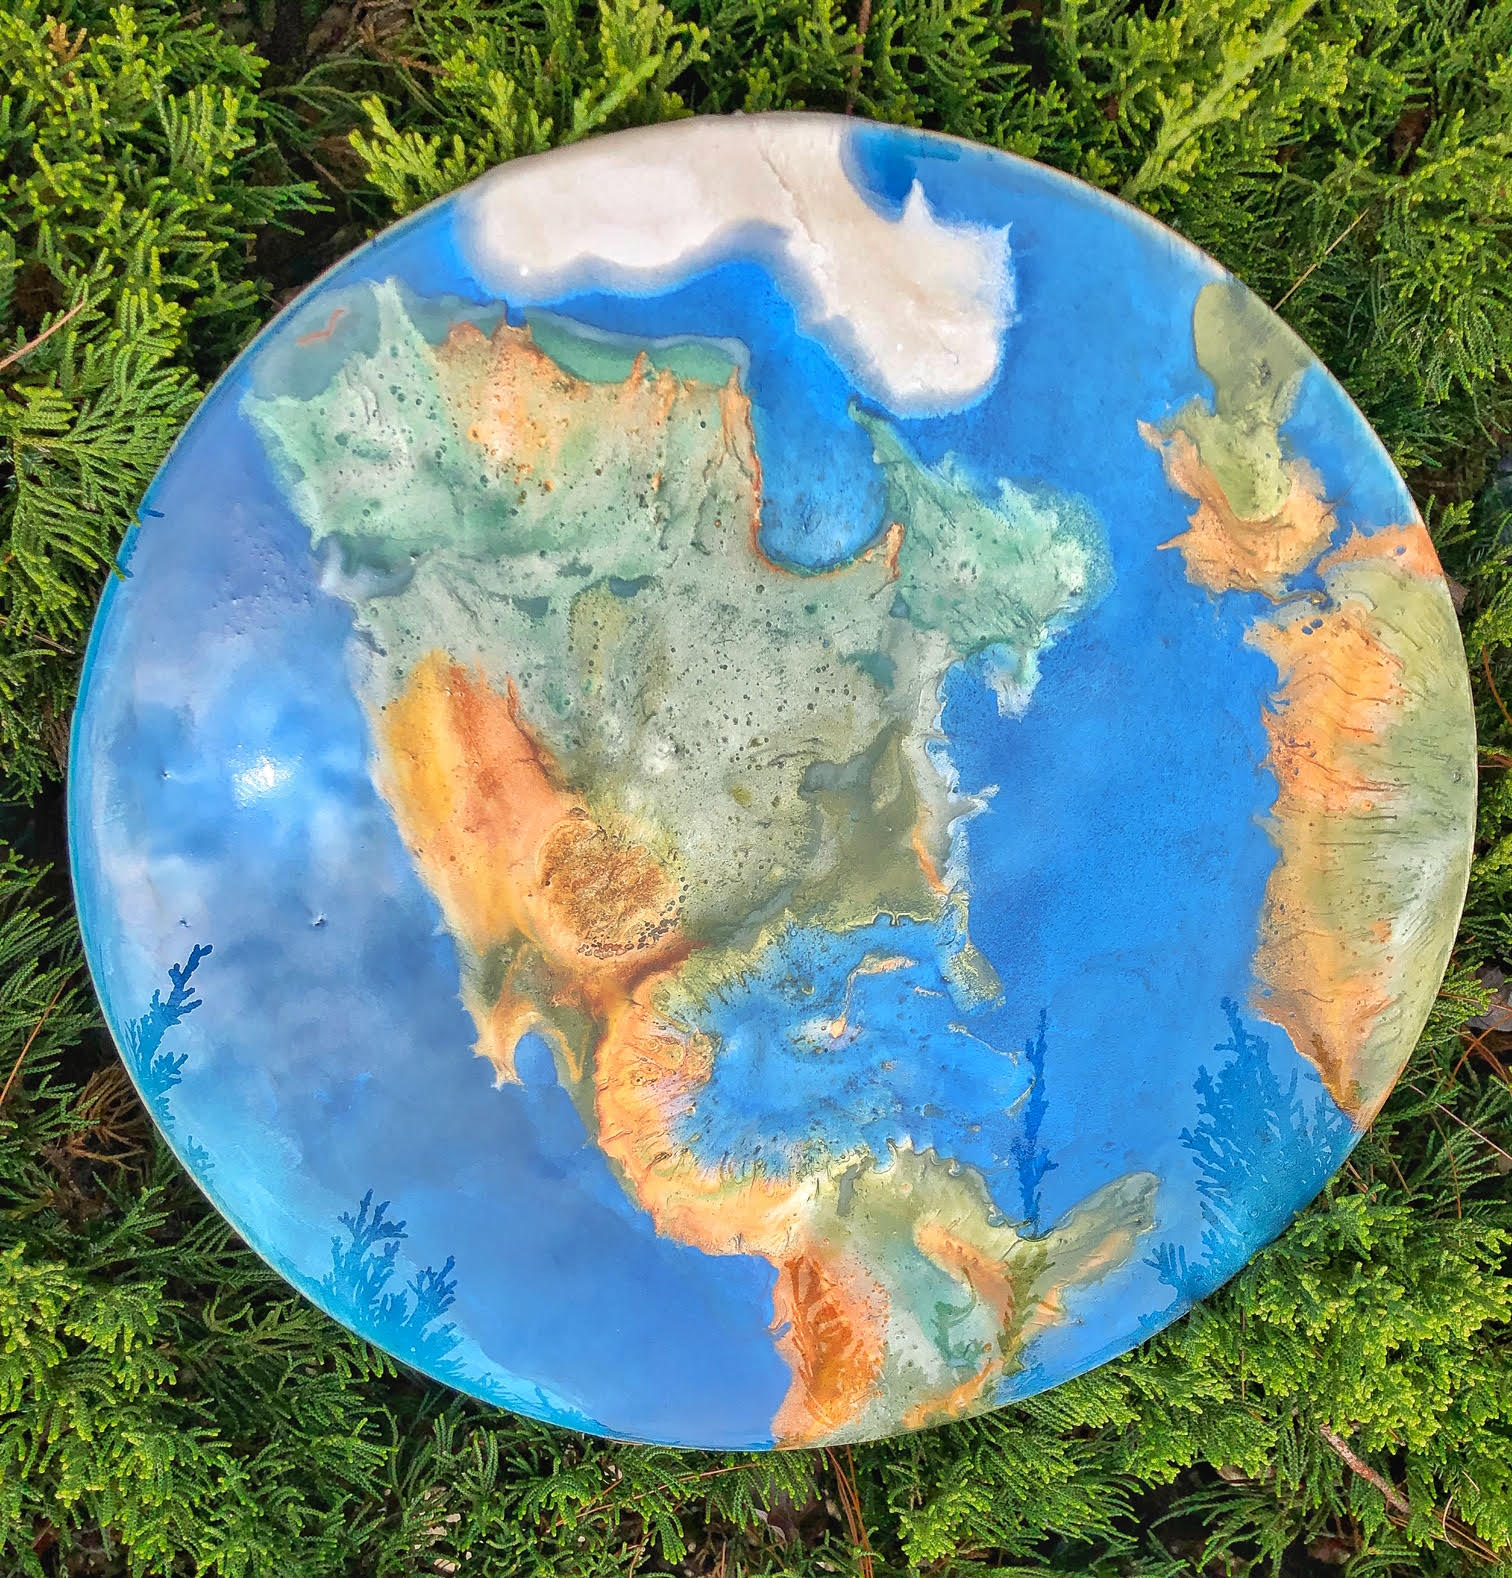 earth-art_starseed-art_earth-artwork_intuitive-art_empath_mother-earth_earth-day_mothers-day-art_conscious-companion_copyright-1